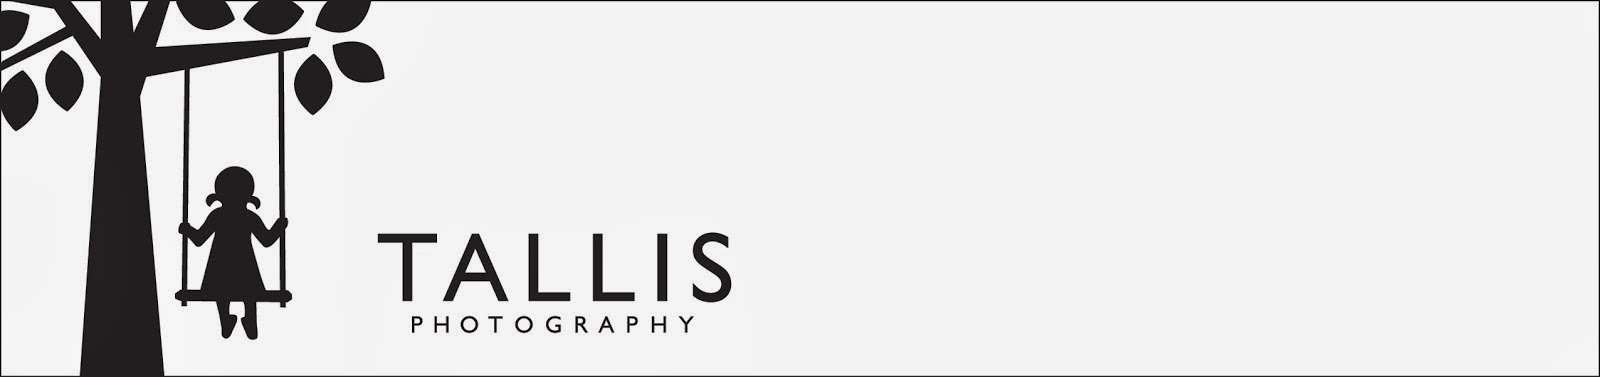 Tallis Photography